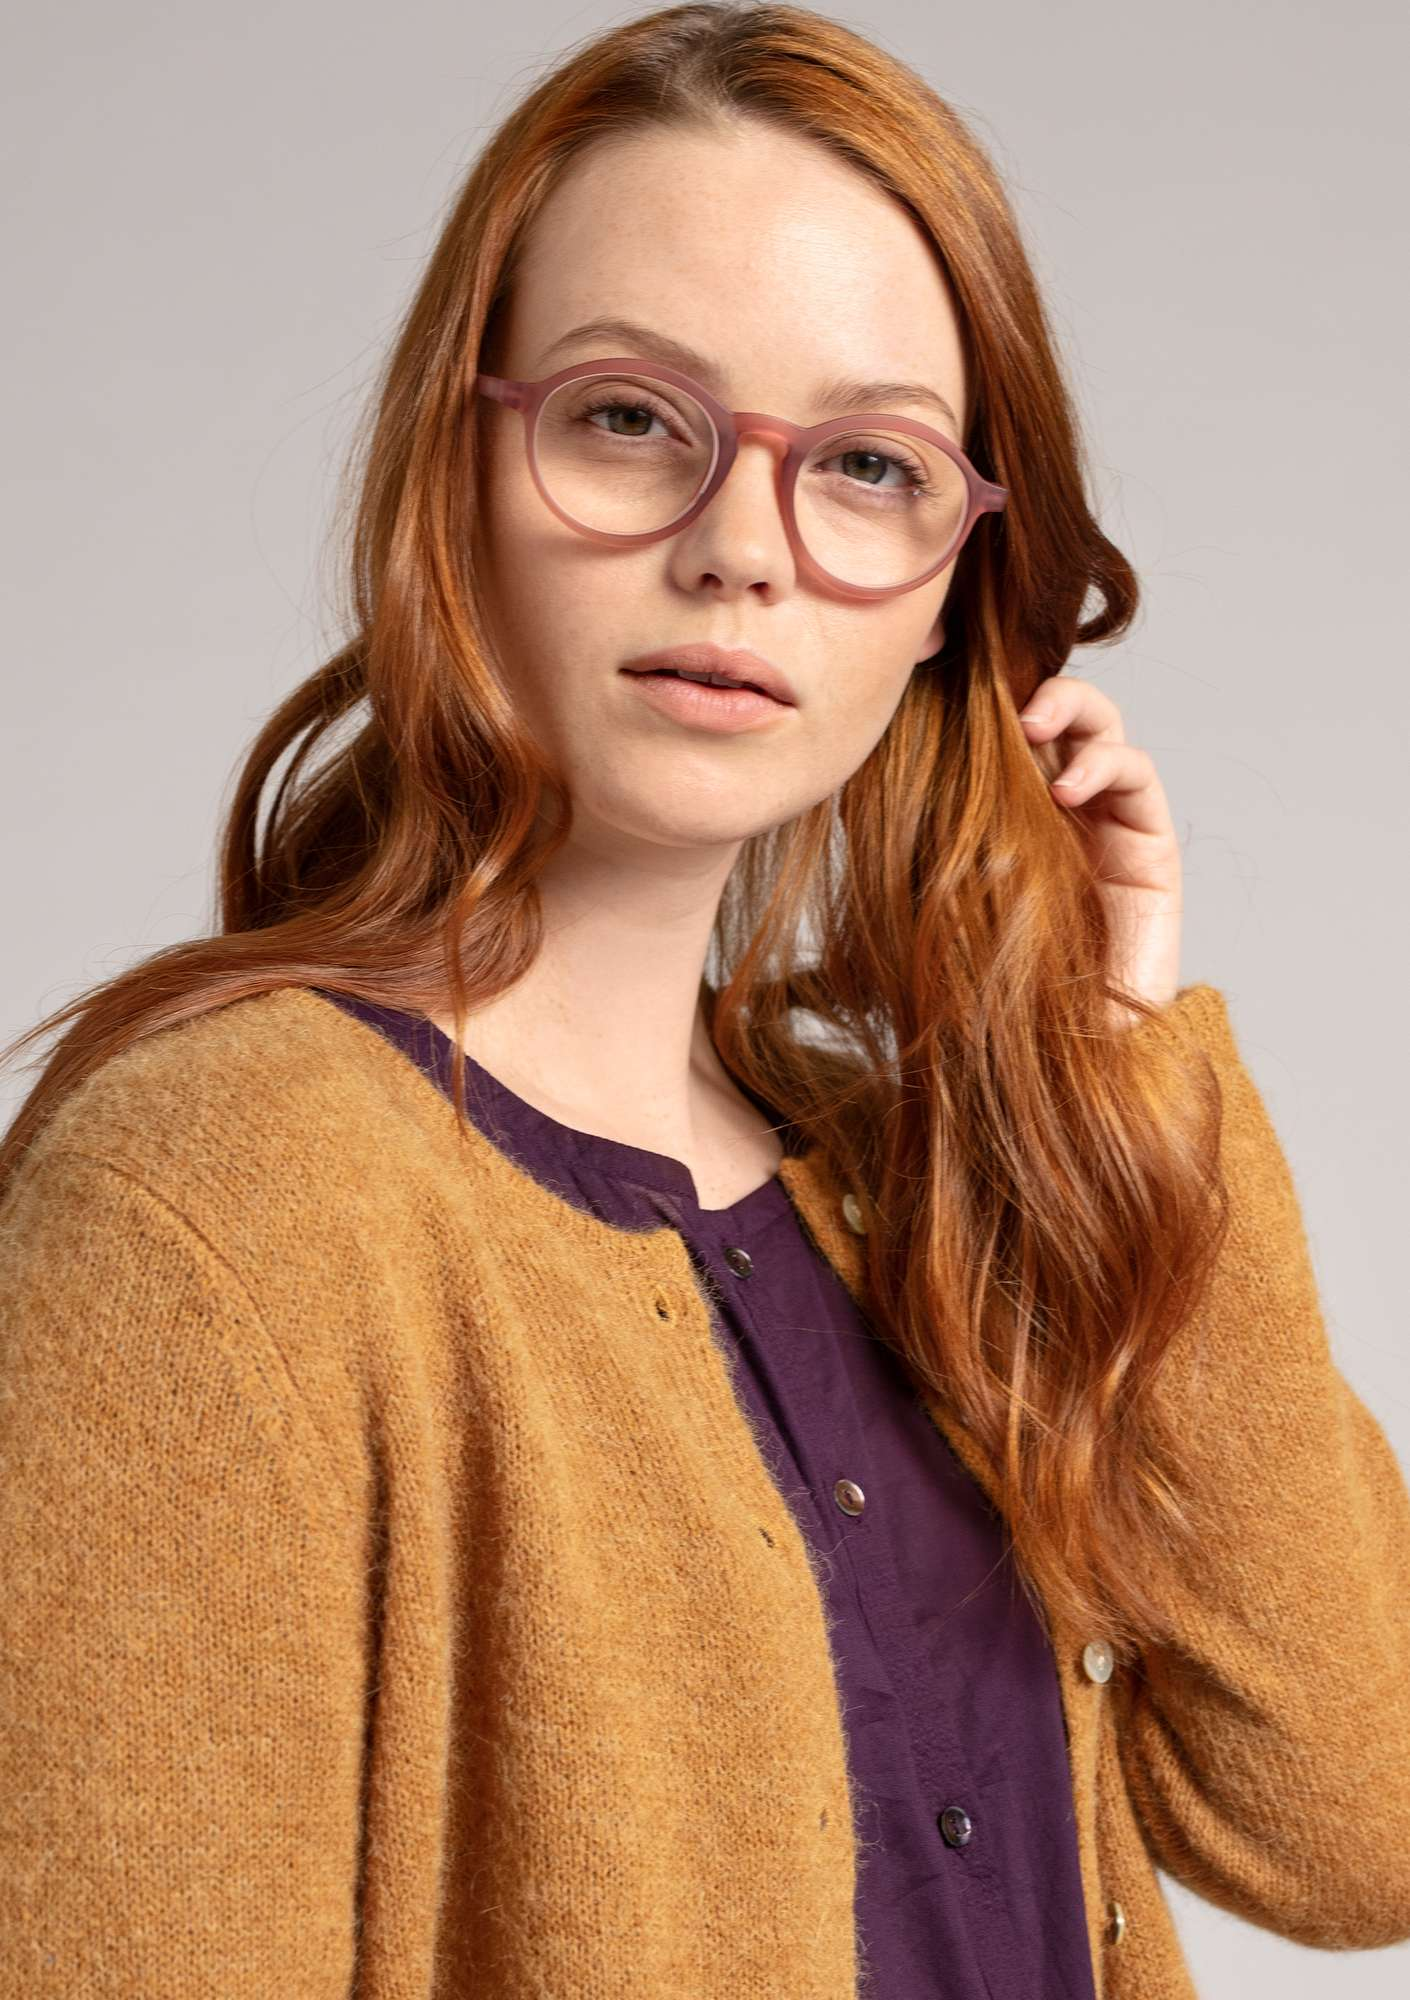 """Gudrun"" reading glasses fig"